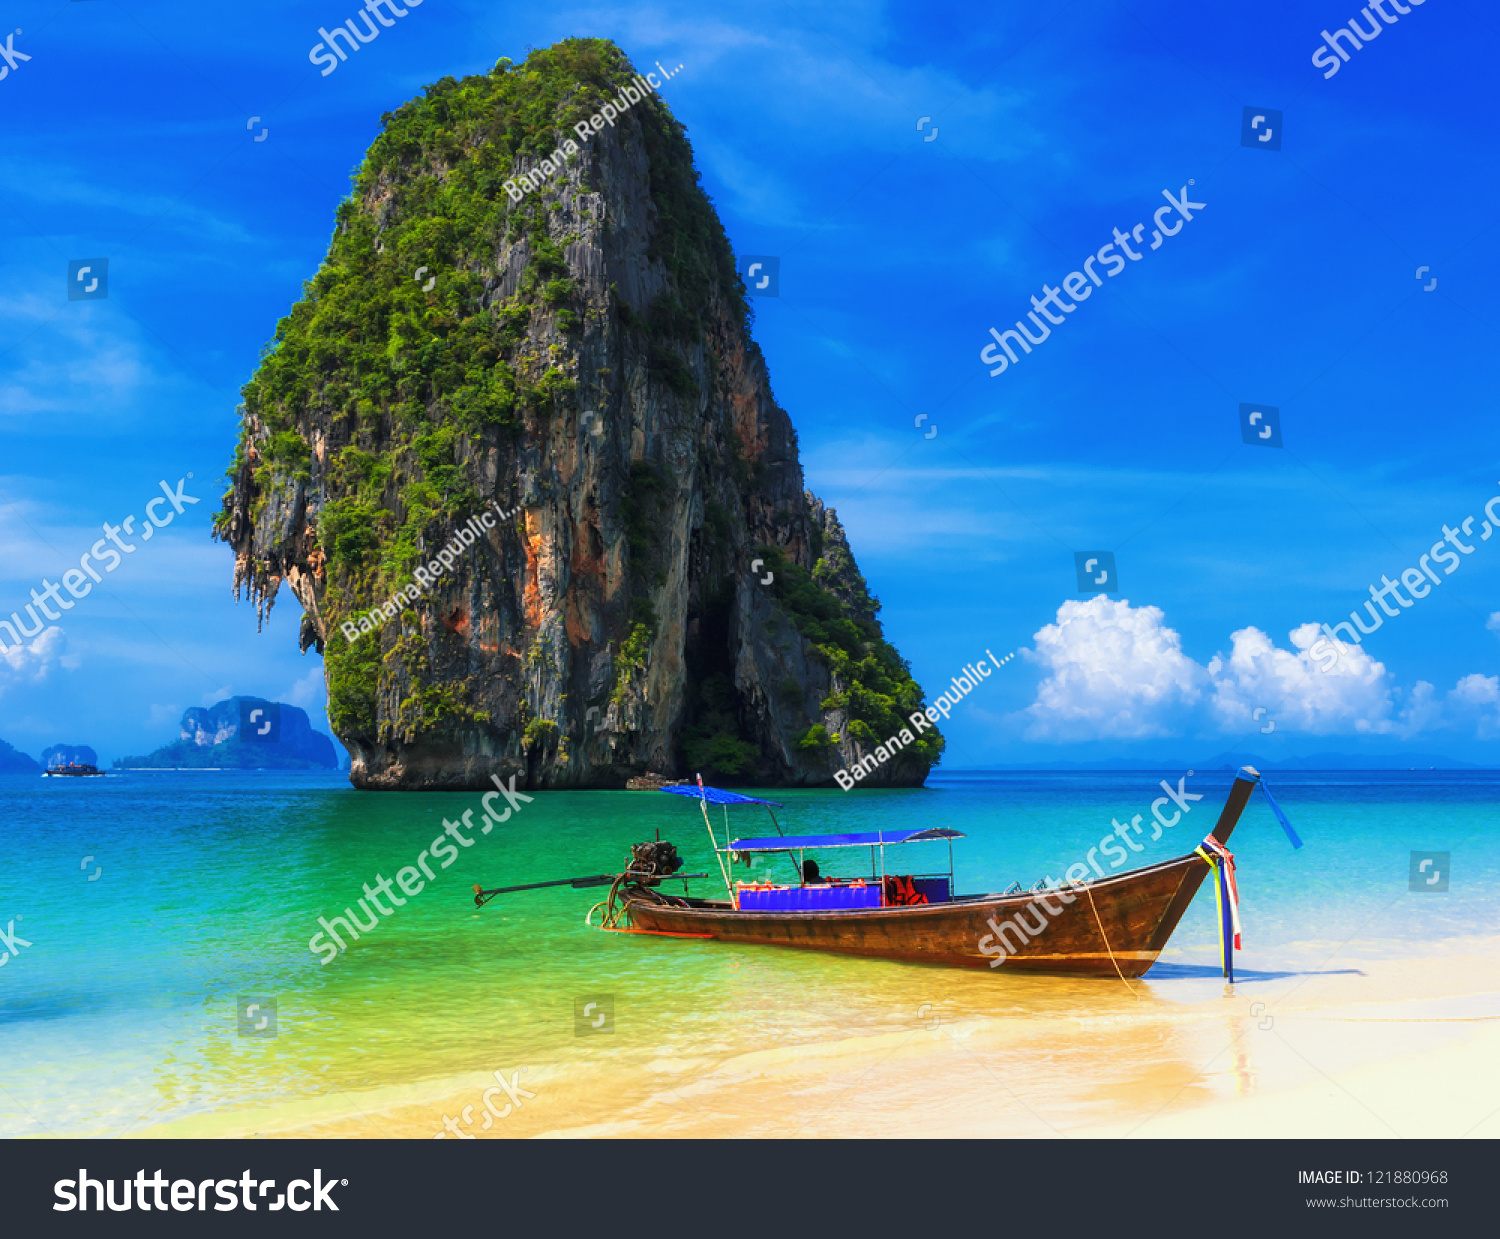 Should You Buy Travel Insurance Coverage Prior To a Journey? stock-photo-thailand-beach-exotic-island-tropical-paradise-for-asia-holiday-121880968